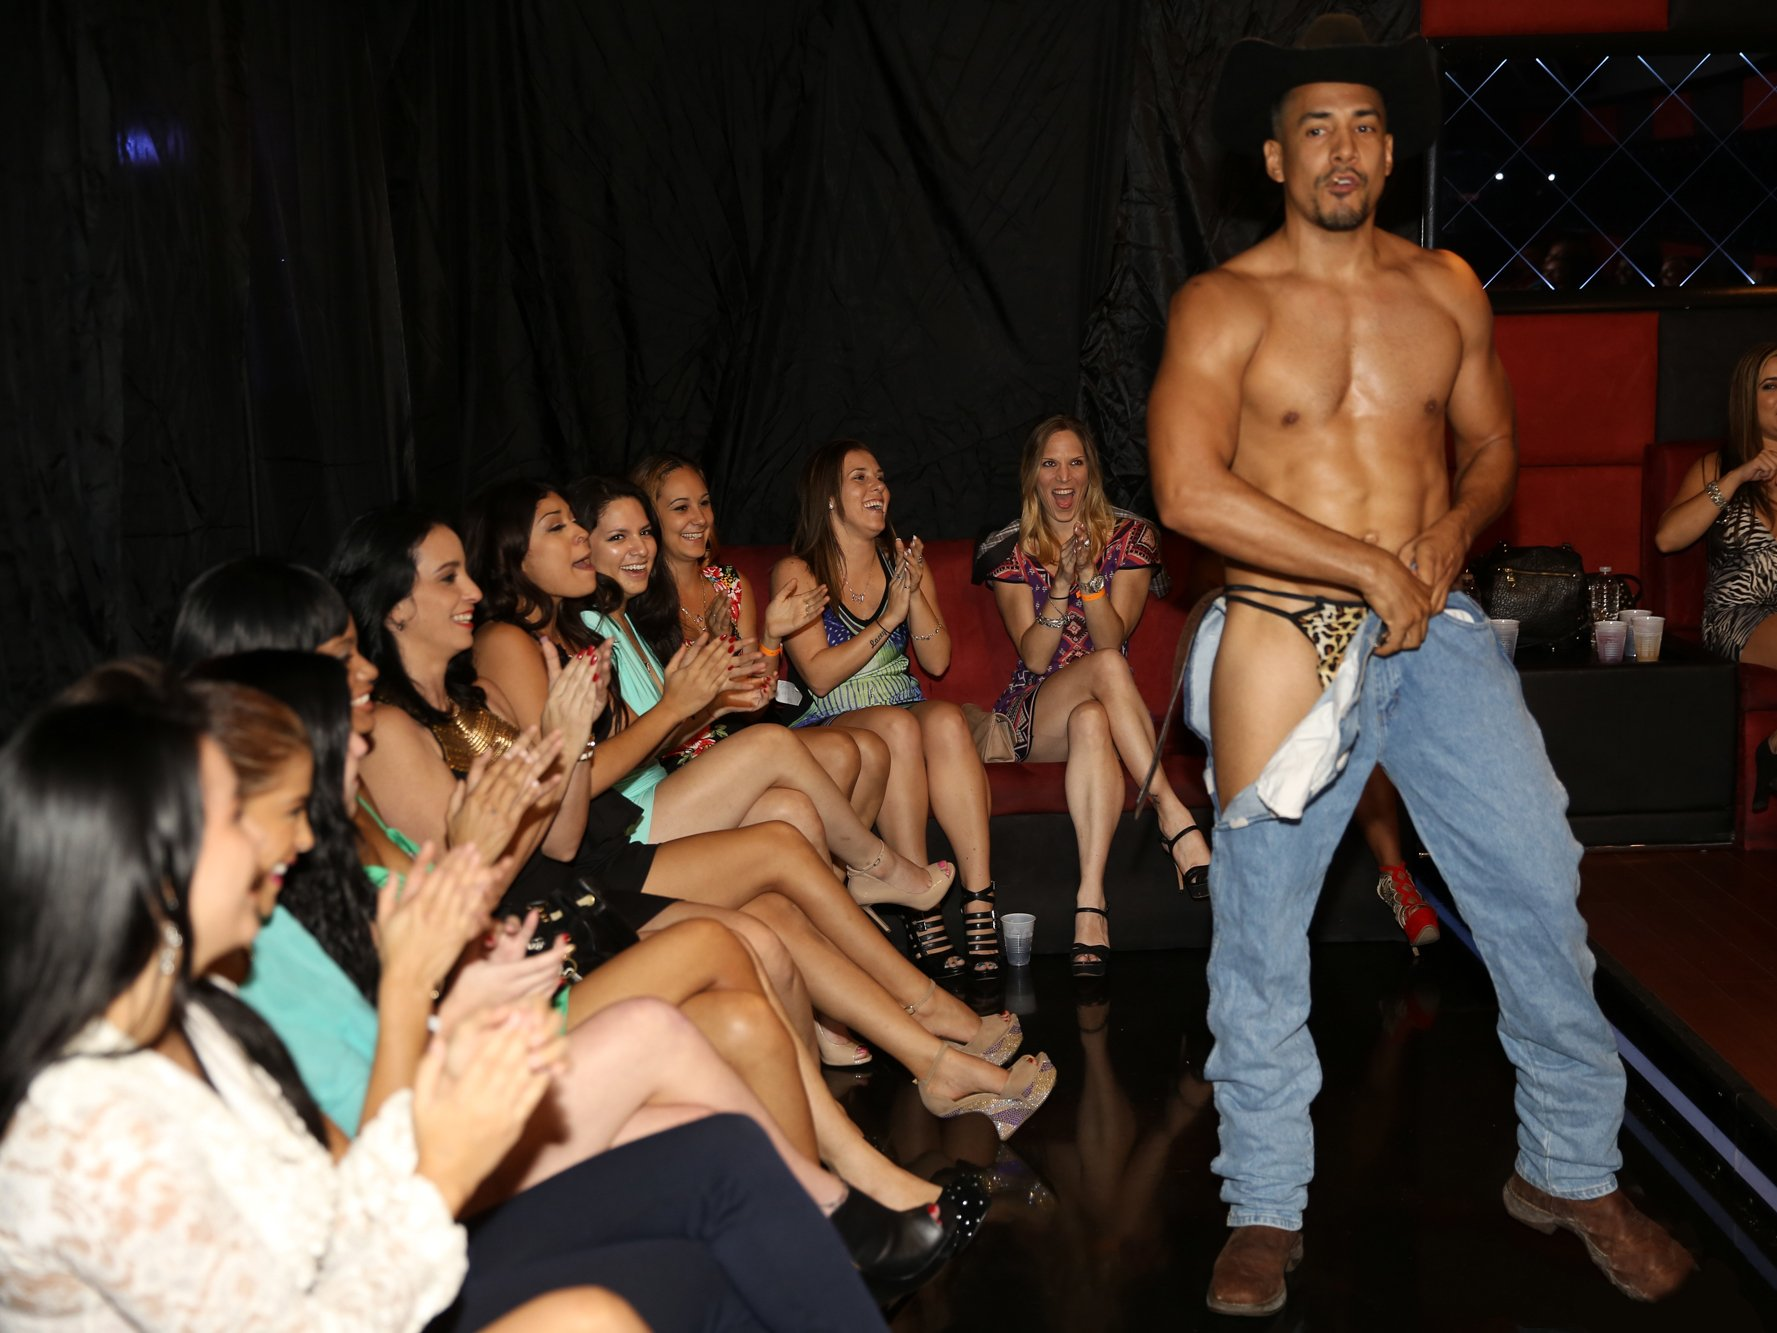 Lucky male strippers get sucked horny chicks